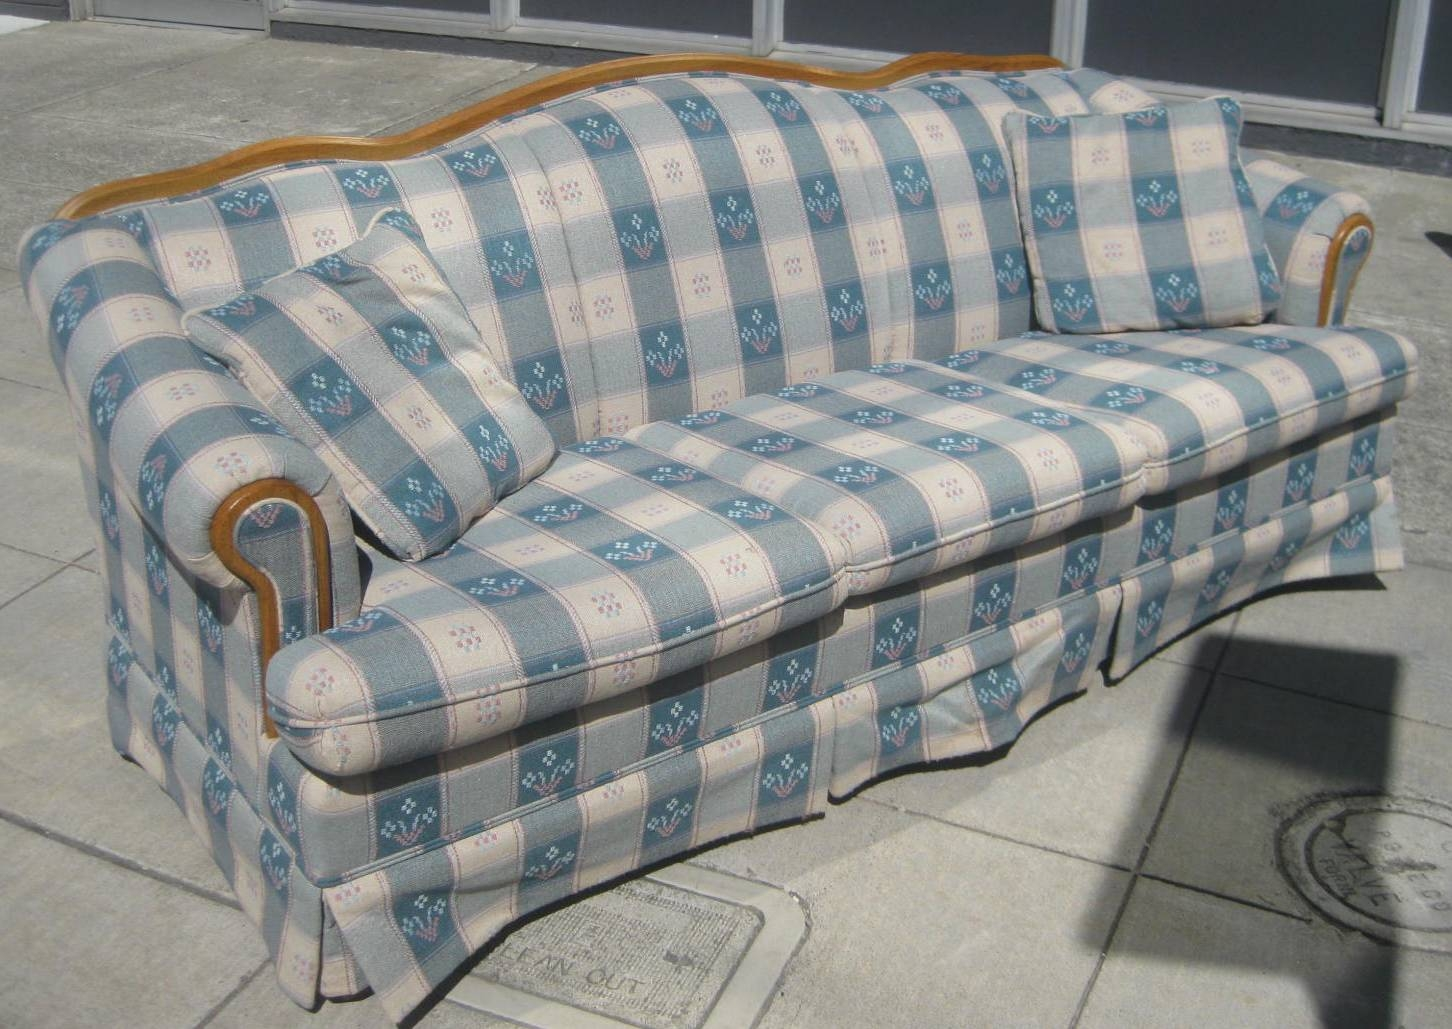 Uhuru Furniture & Collectibles: Sold - Plaid Sofa - $60 with Blue Plaid Sofas (Image 15 of 15)